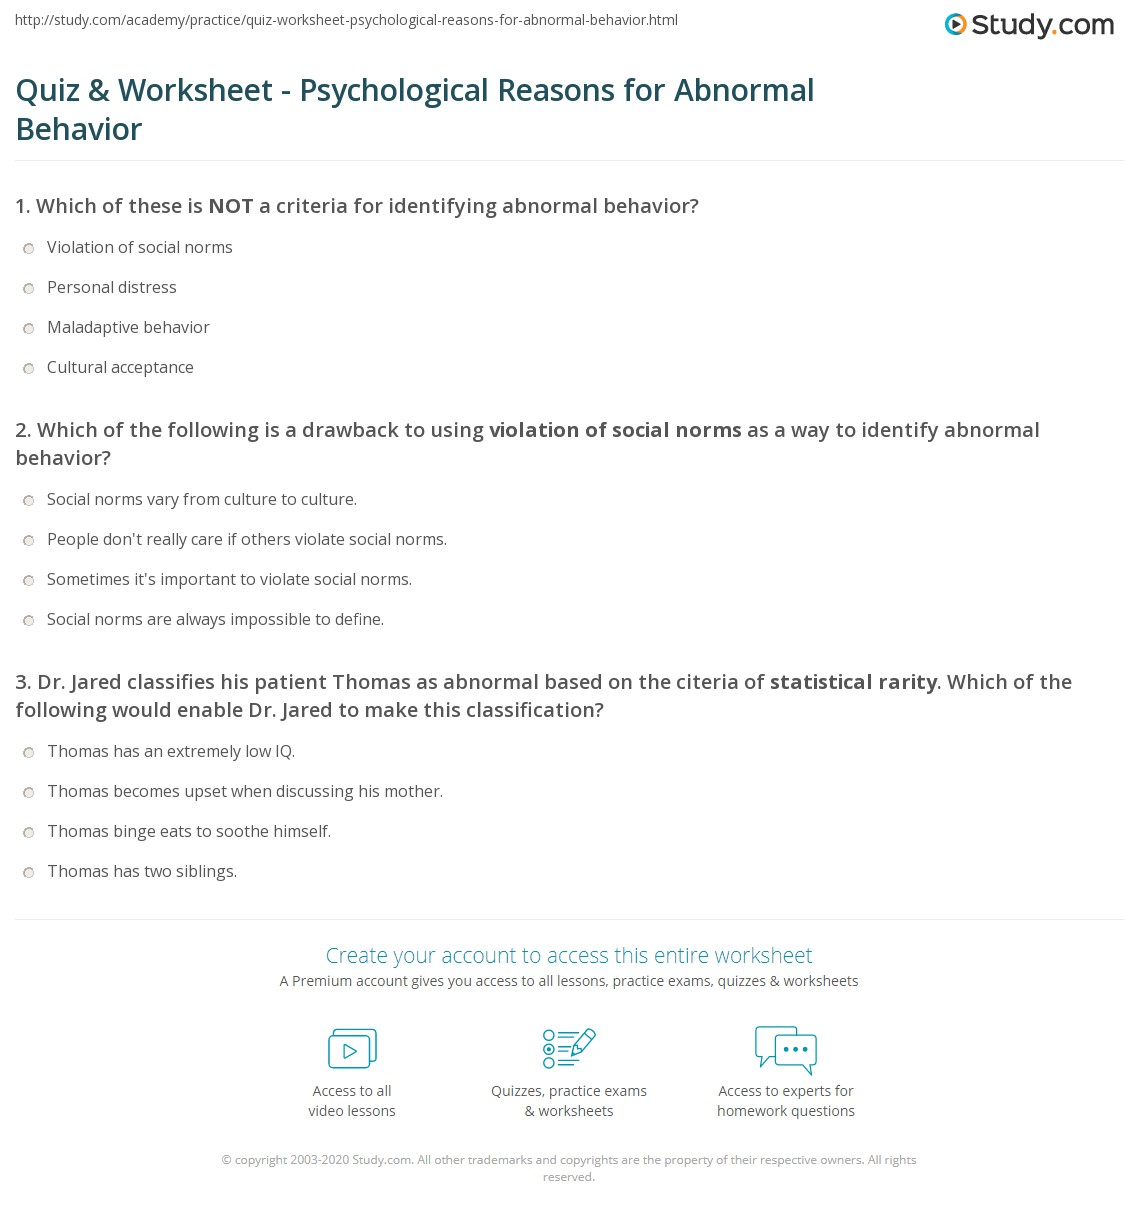 Quiz & Worksheet - Psychological Reasons for Abnormal Behavior | Study ...